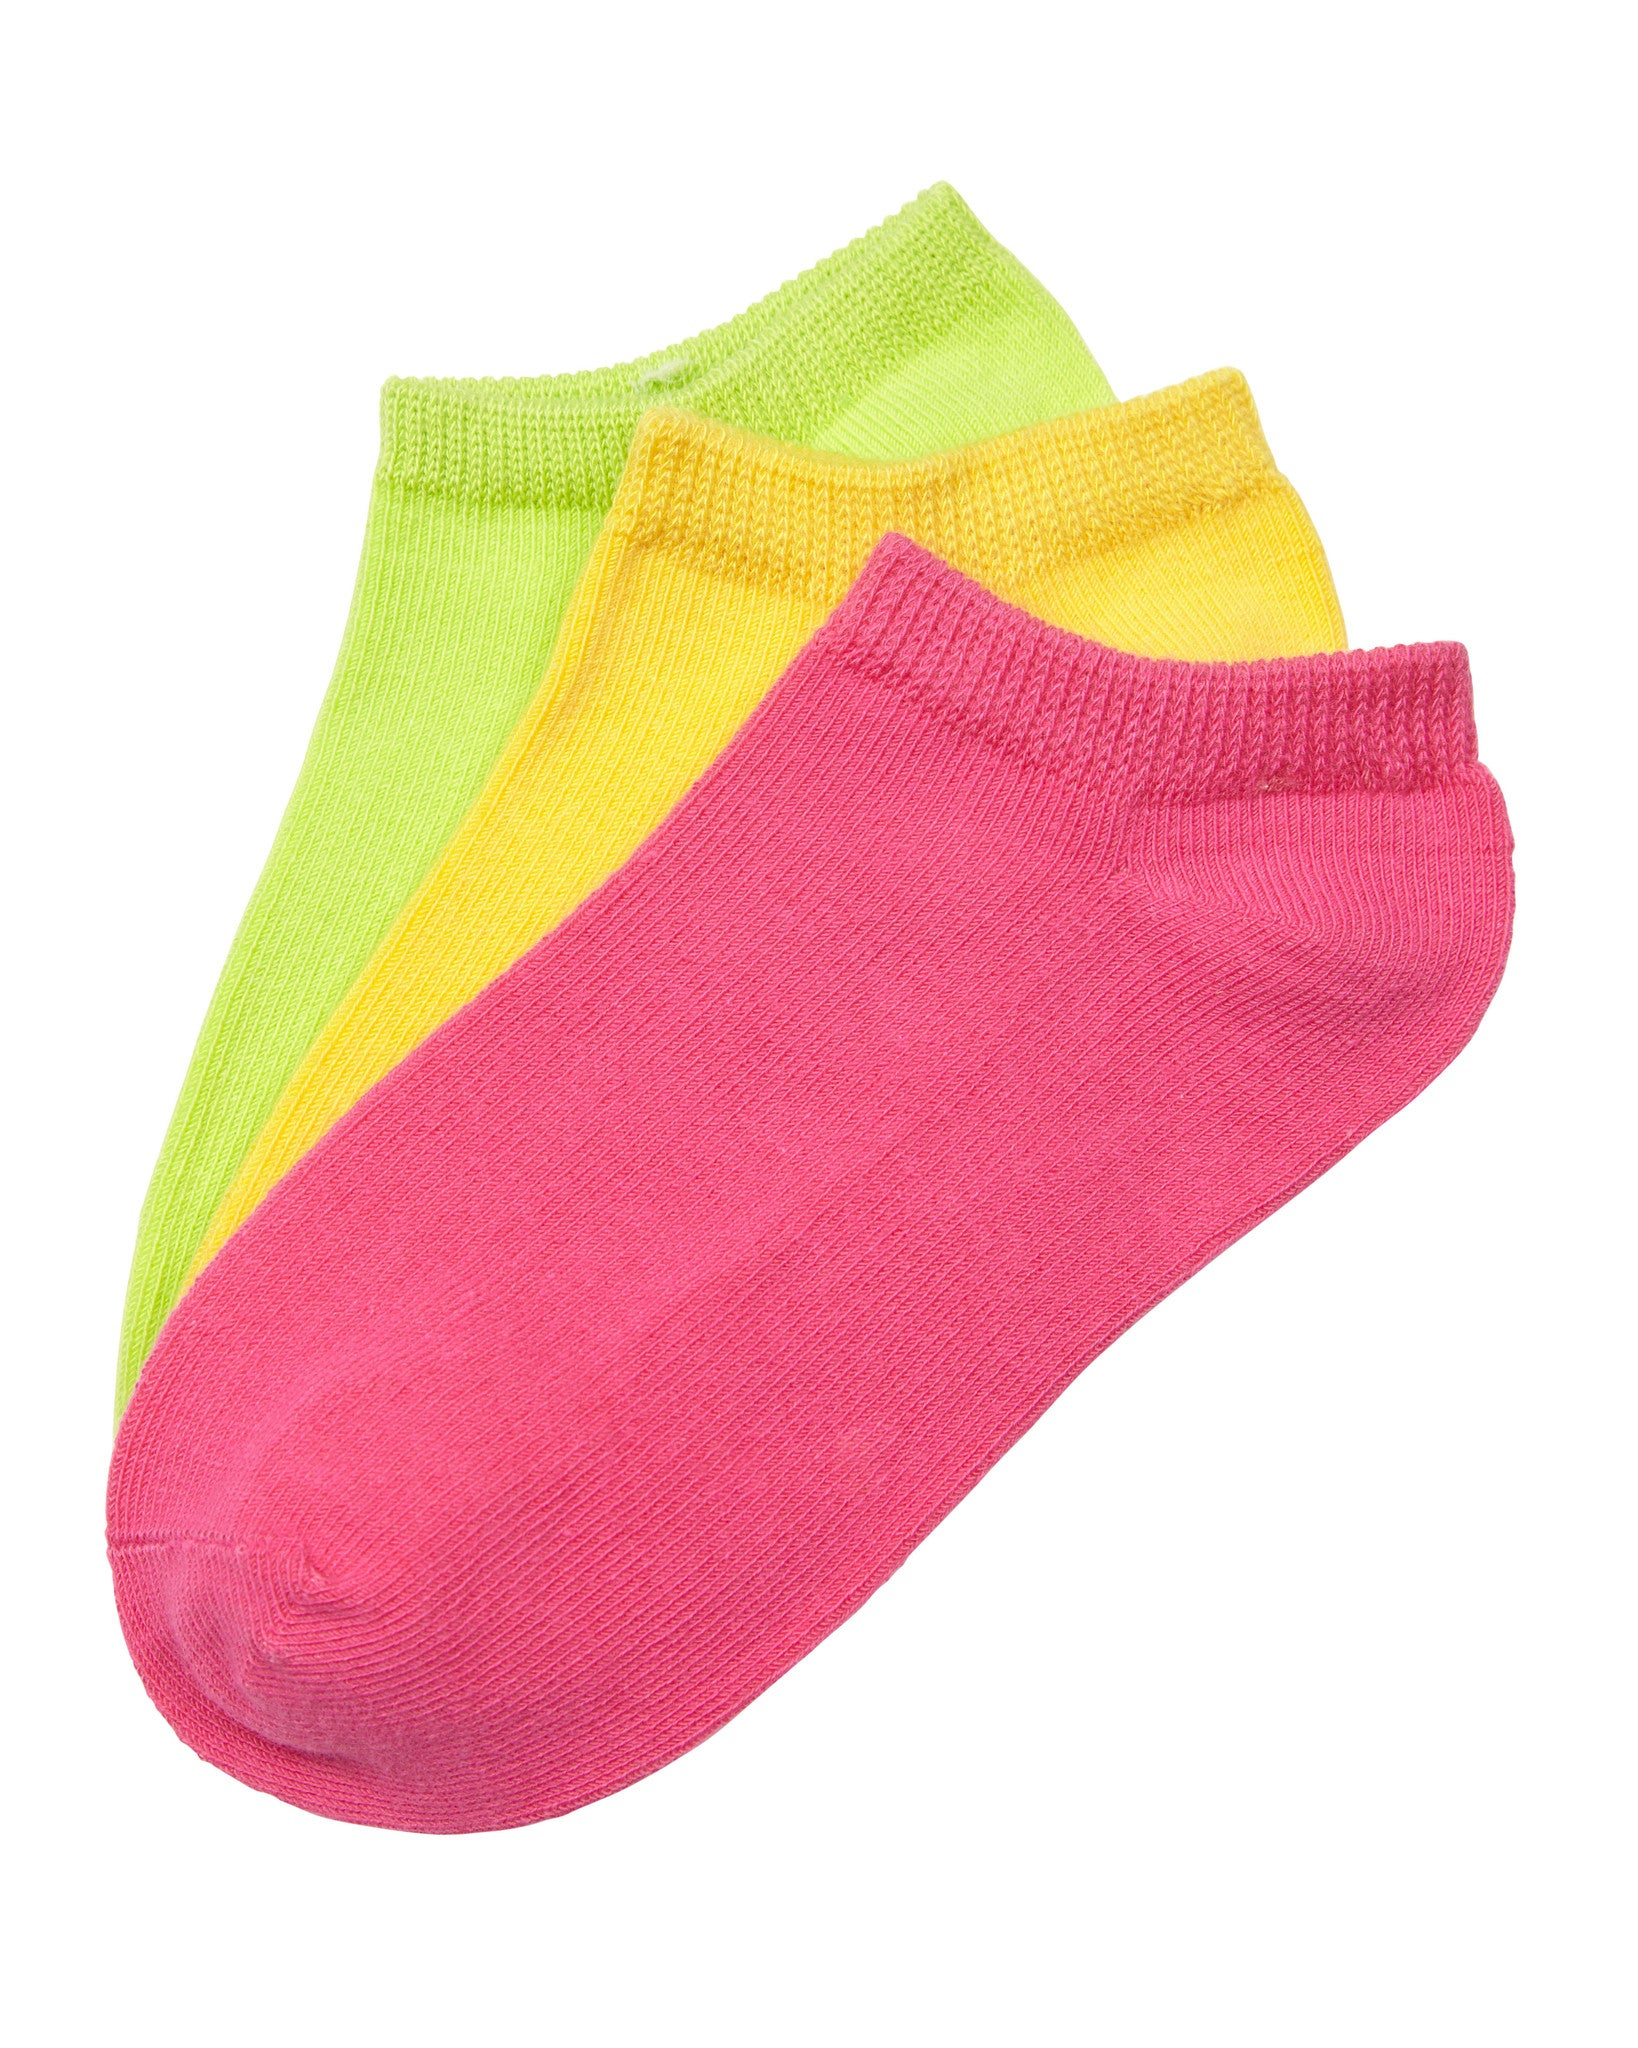 3-Pack No Show Sport Liner with Comfortoe Technology Socks